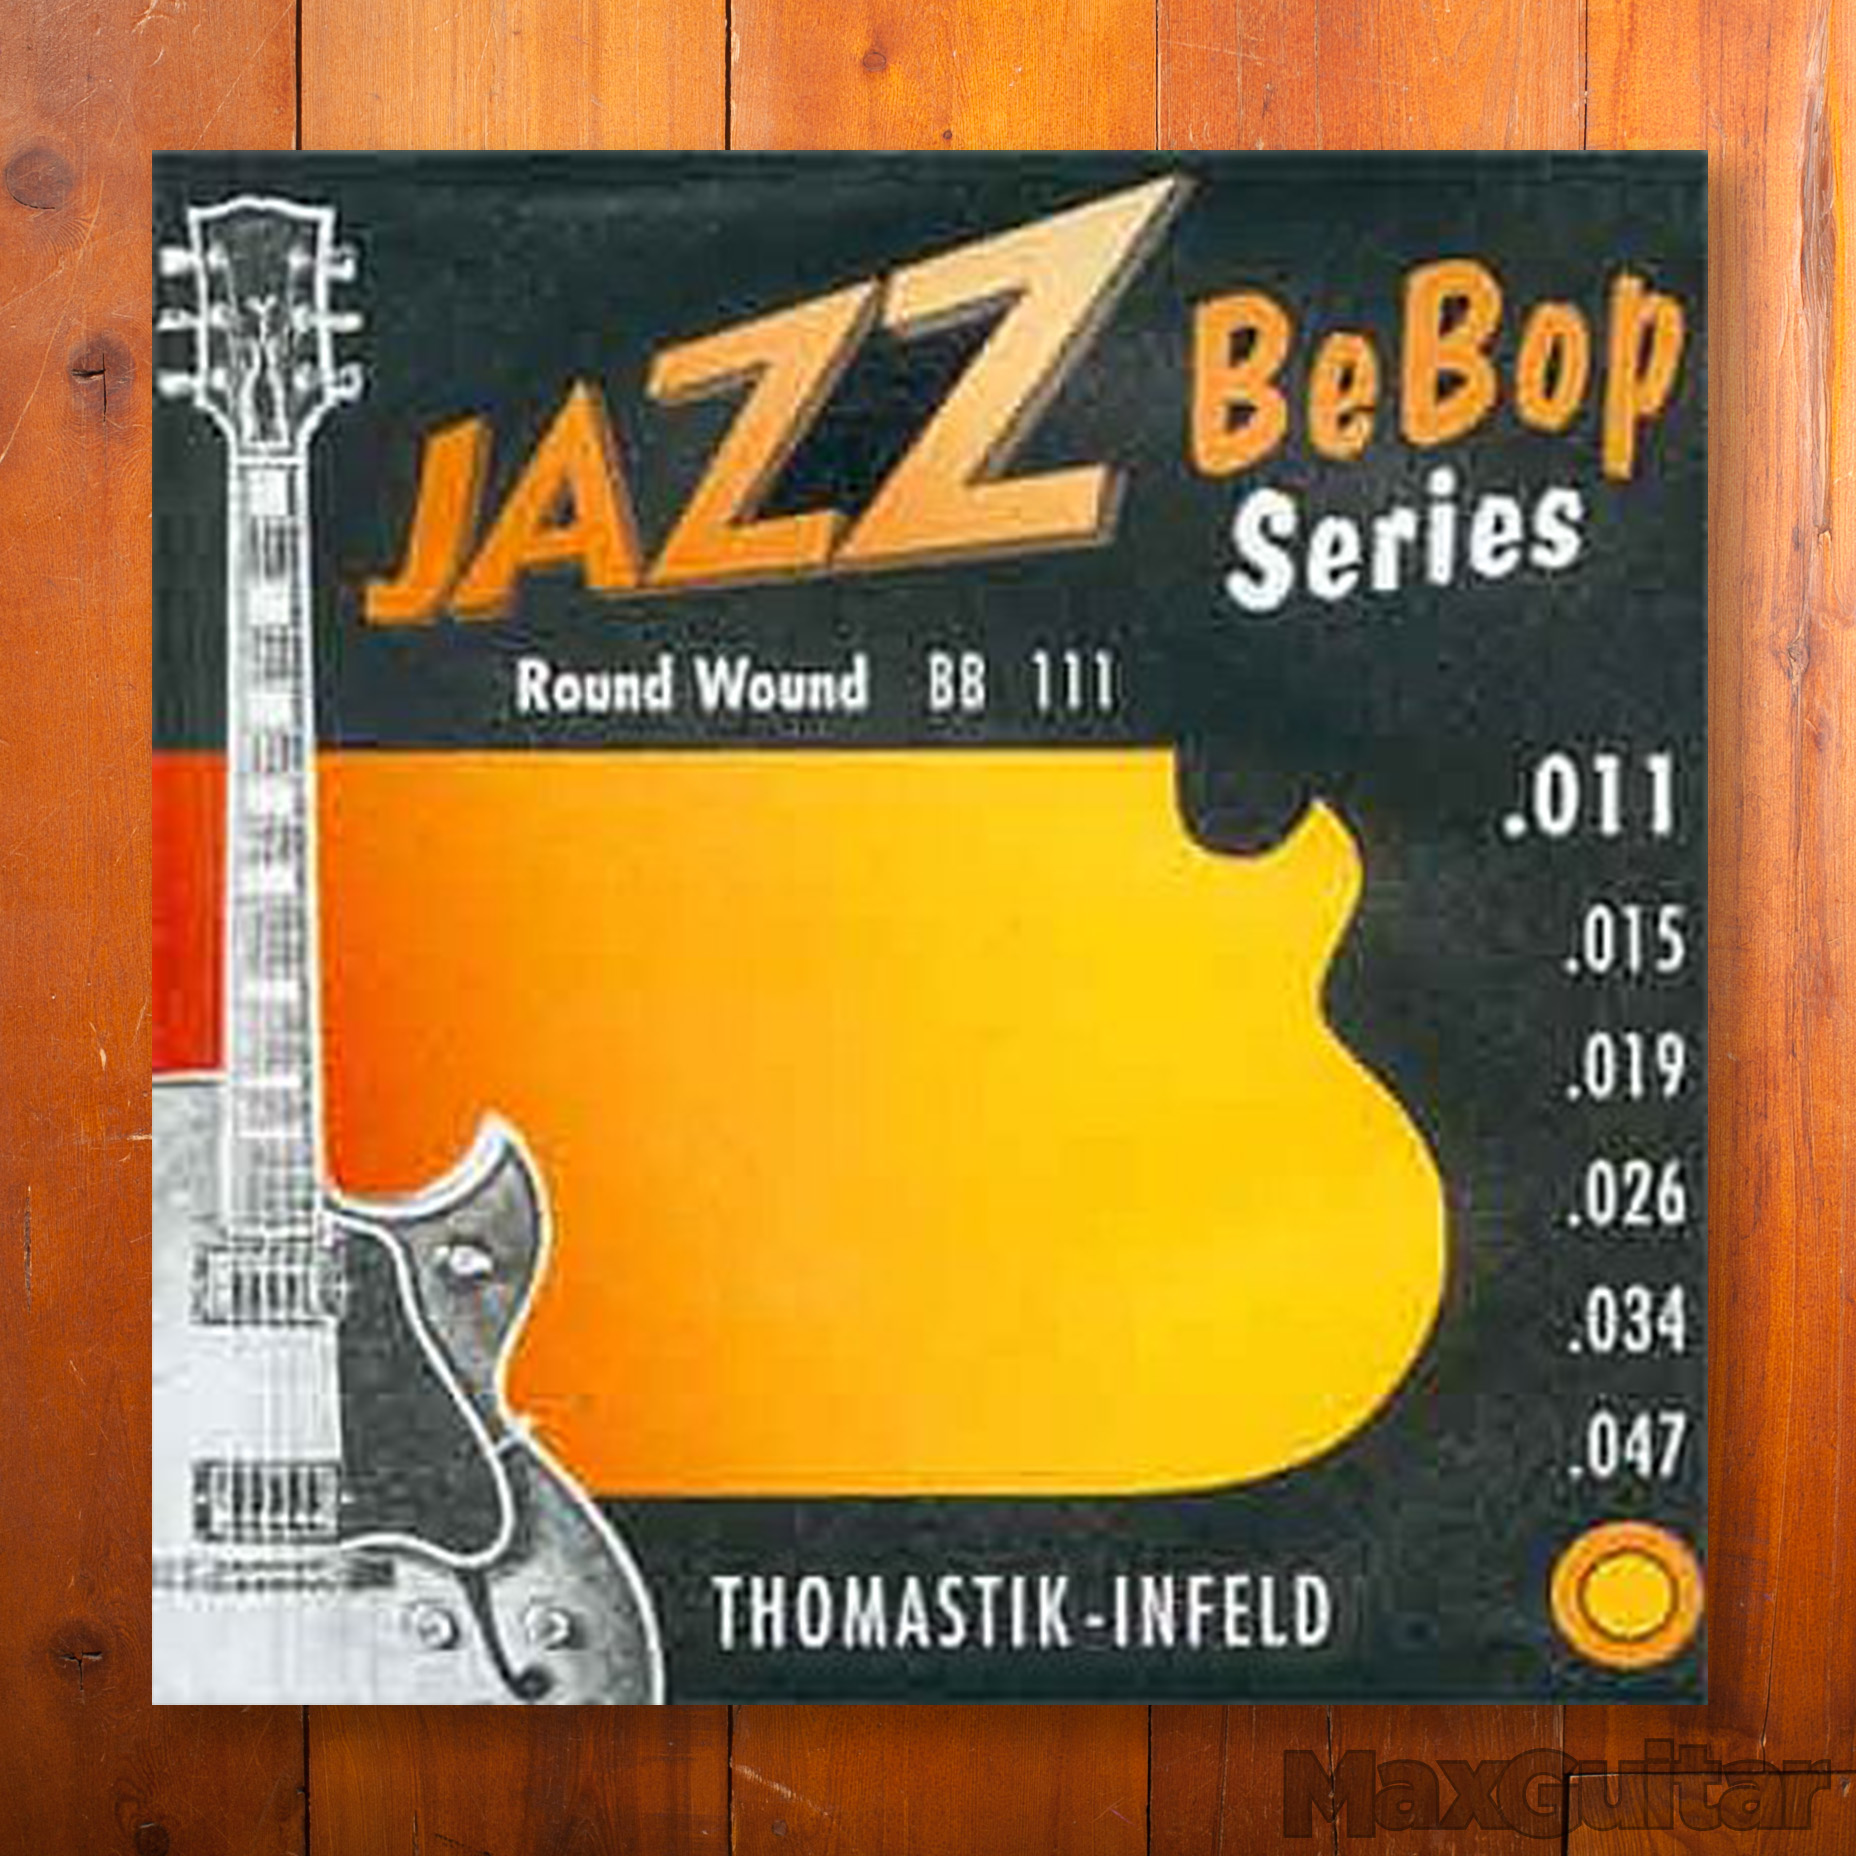 Thomastik-Infeld BB111 Jazz BeBop Roundwound Extra Light